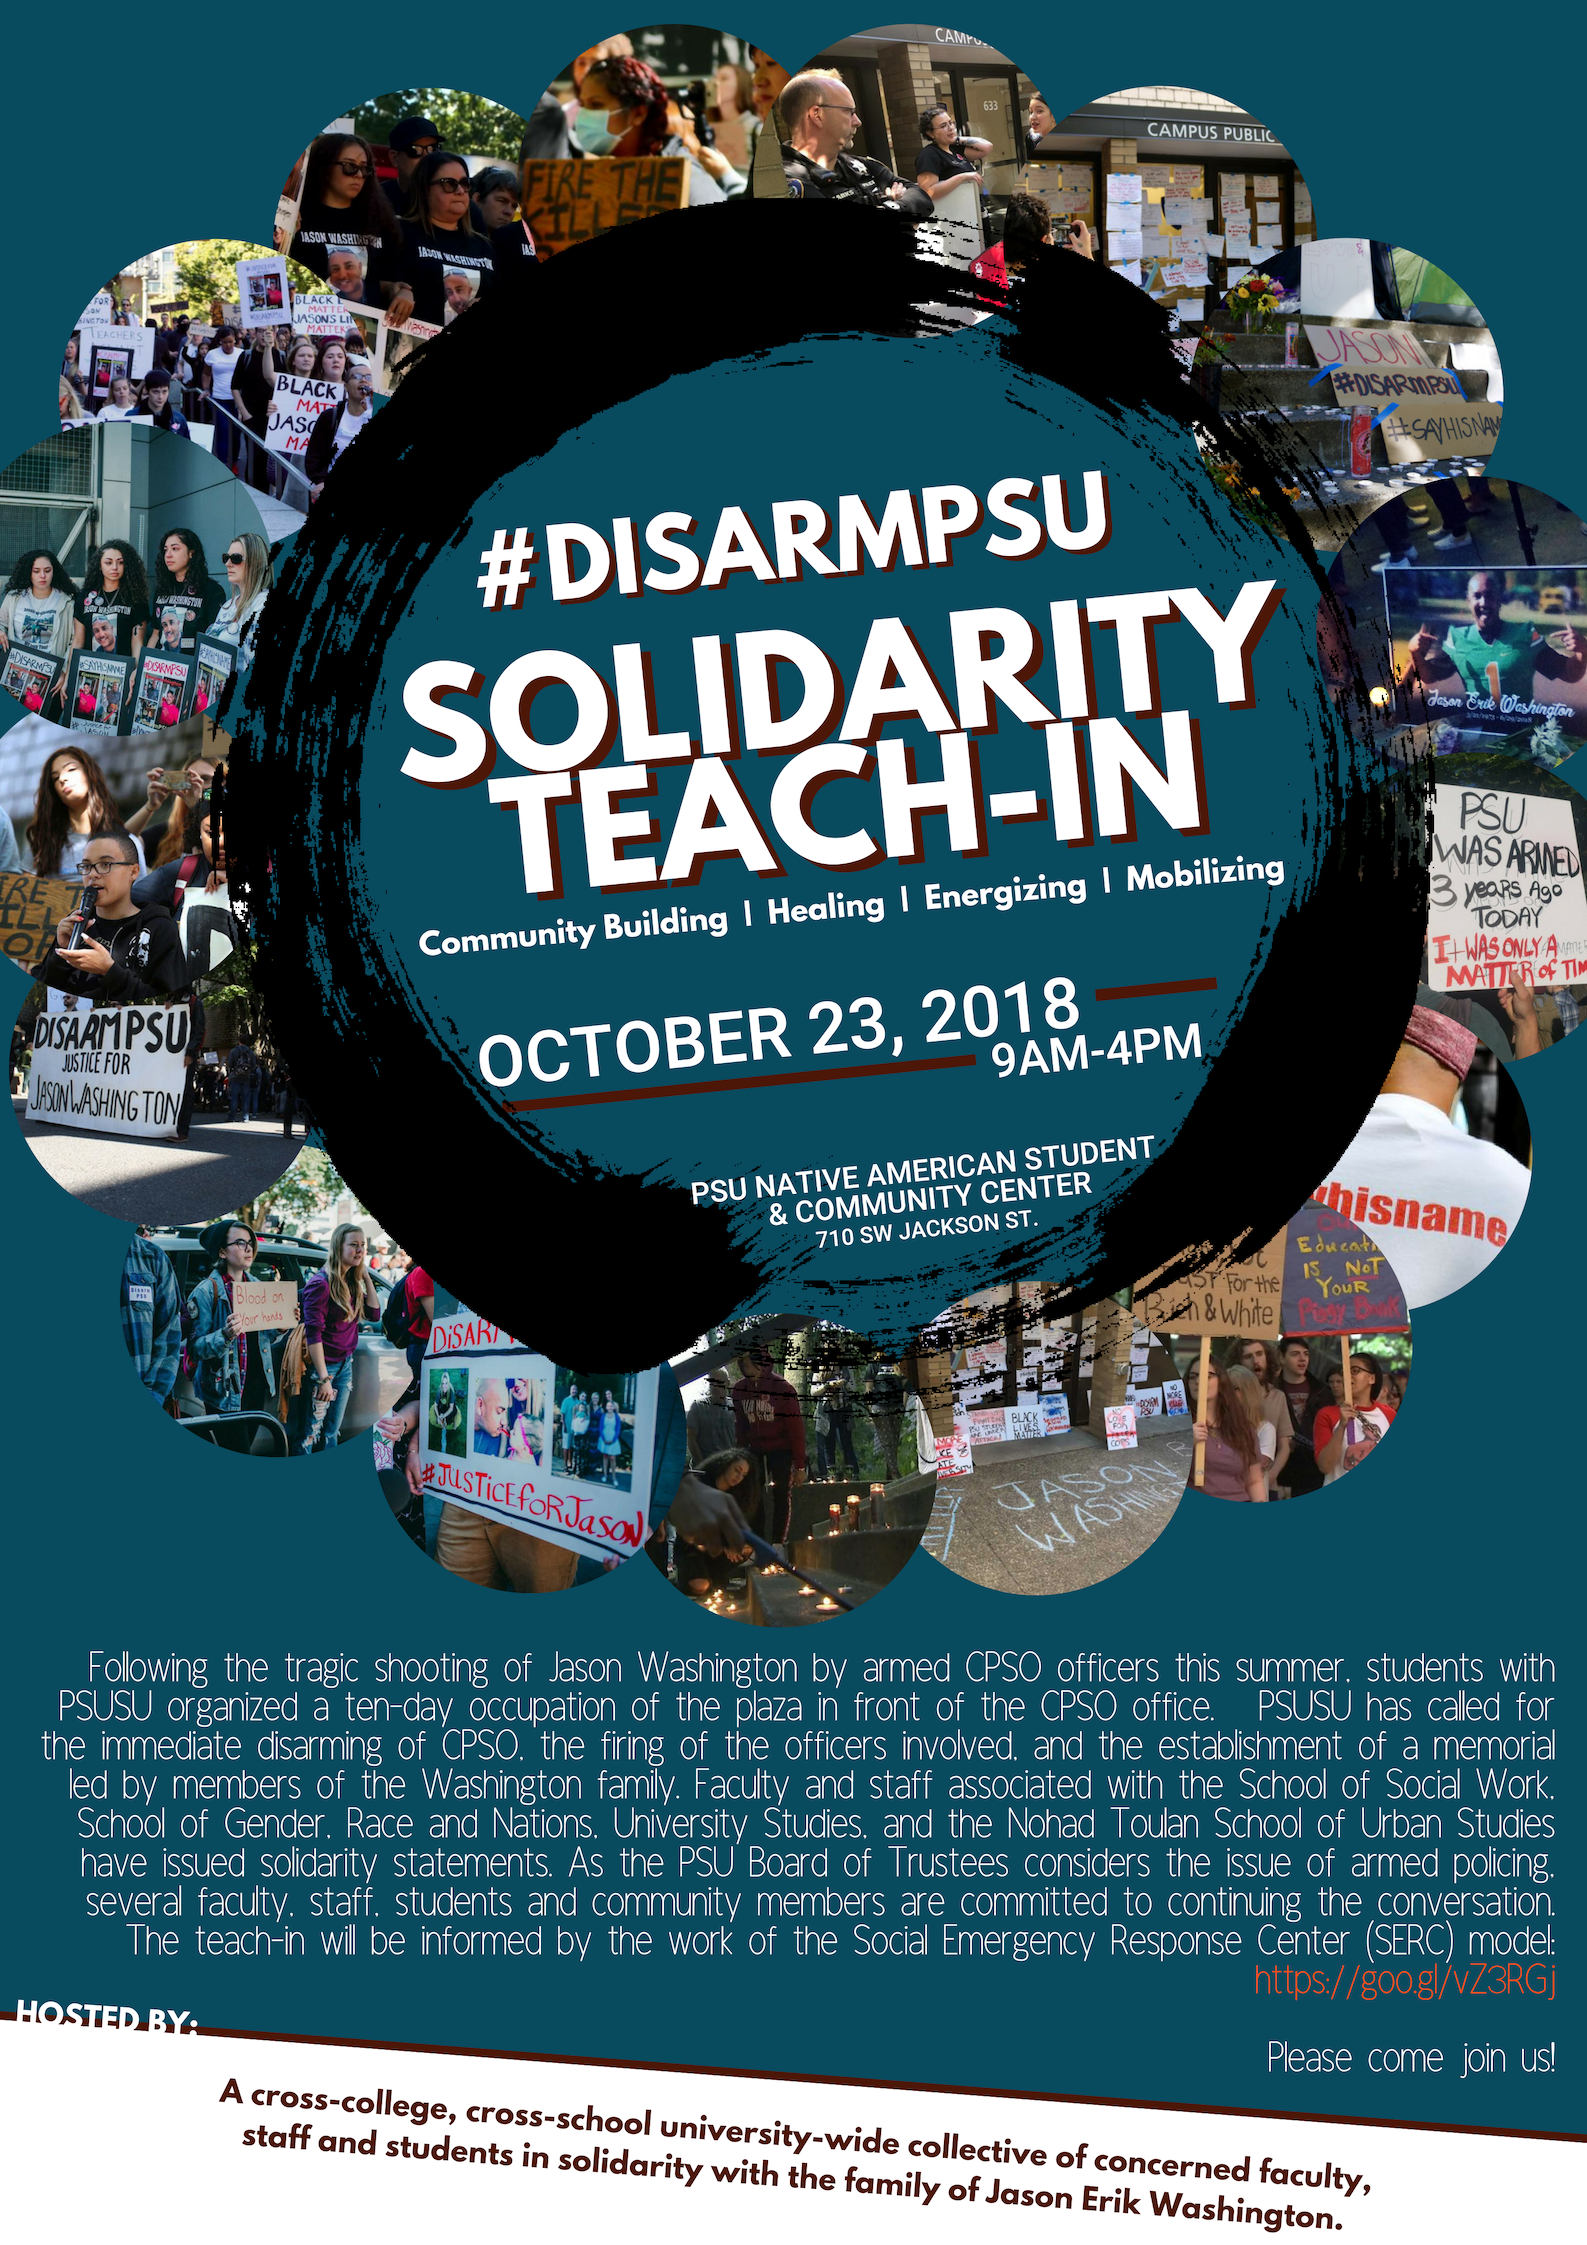 #DISARMPSU Solidarity Teach-In